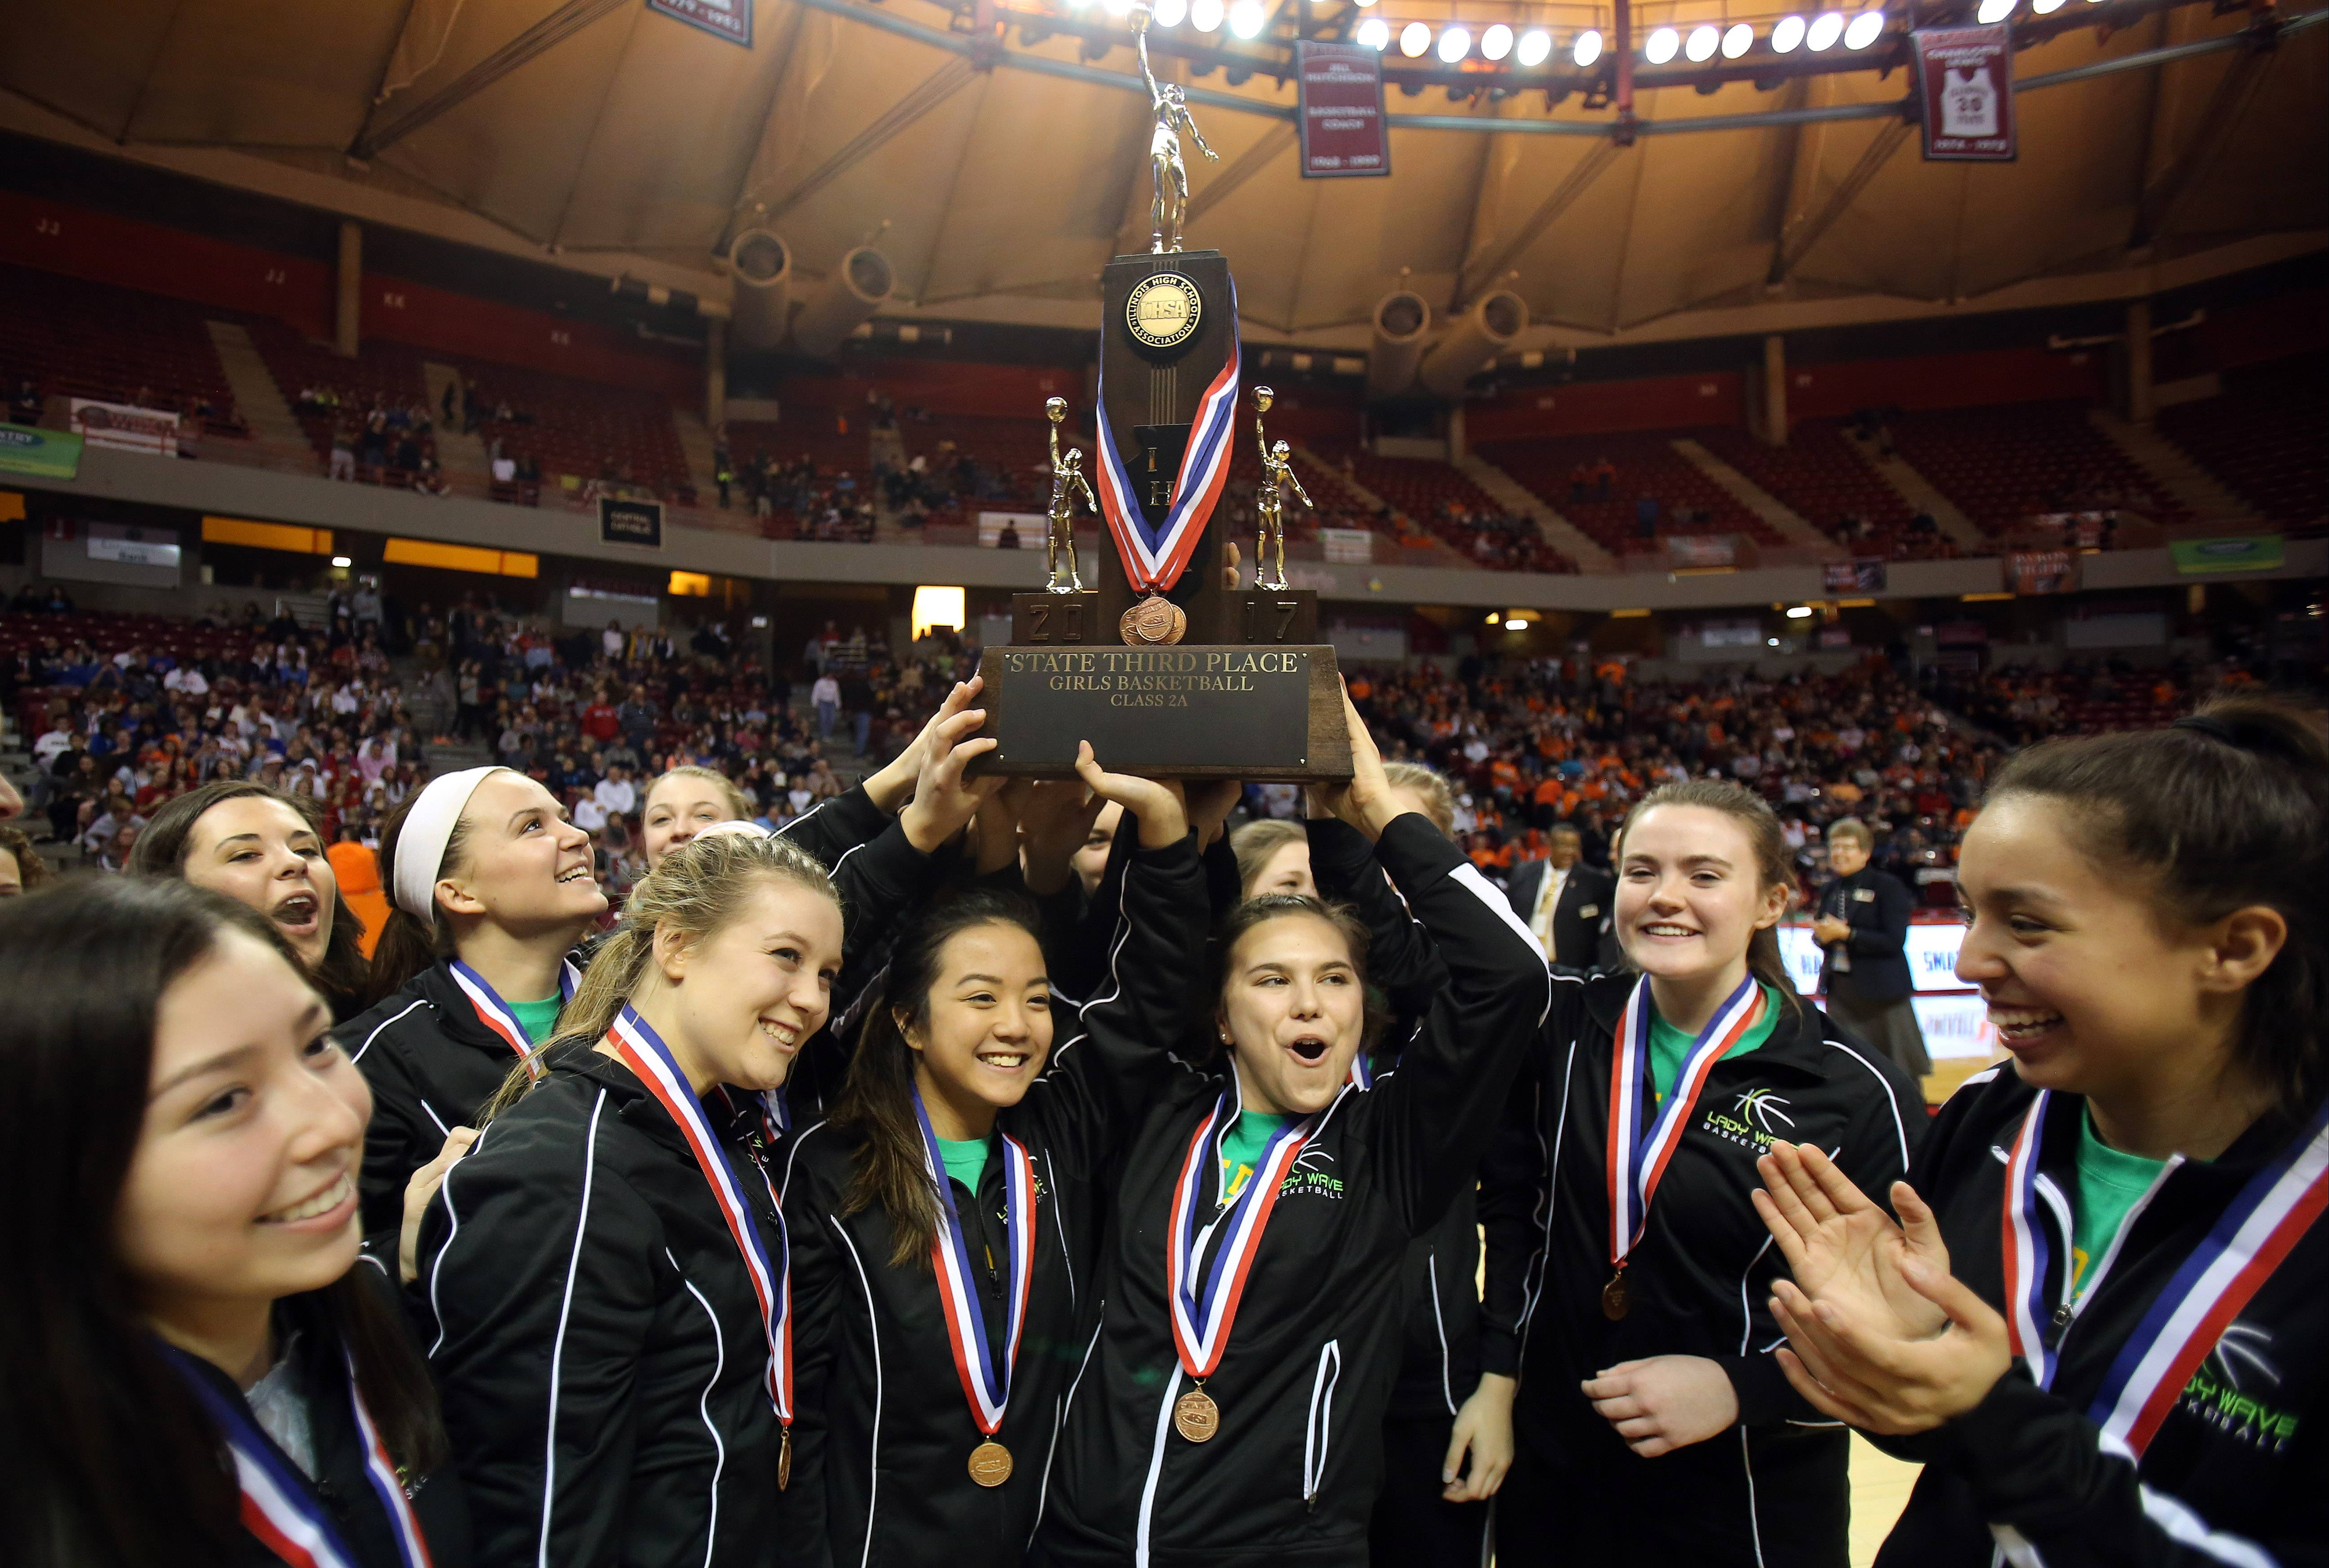 St. Edward more than satisfied with 3rd place at state